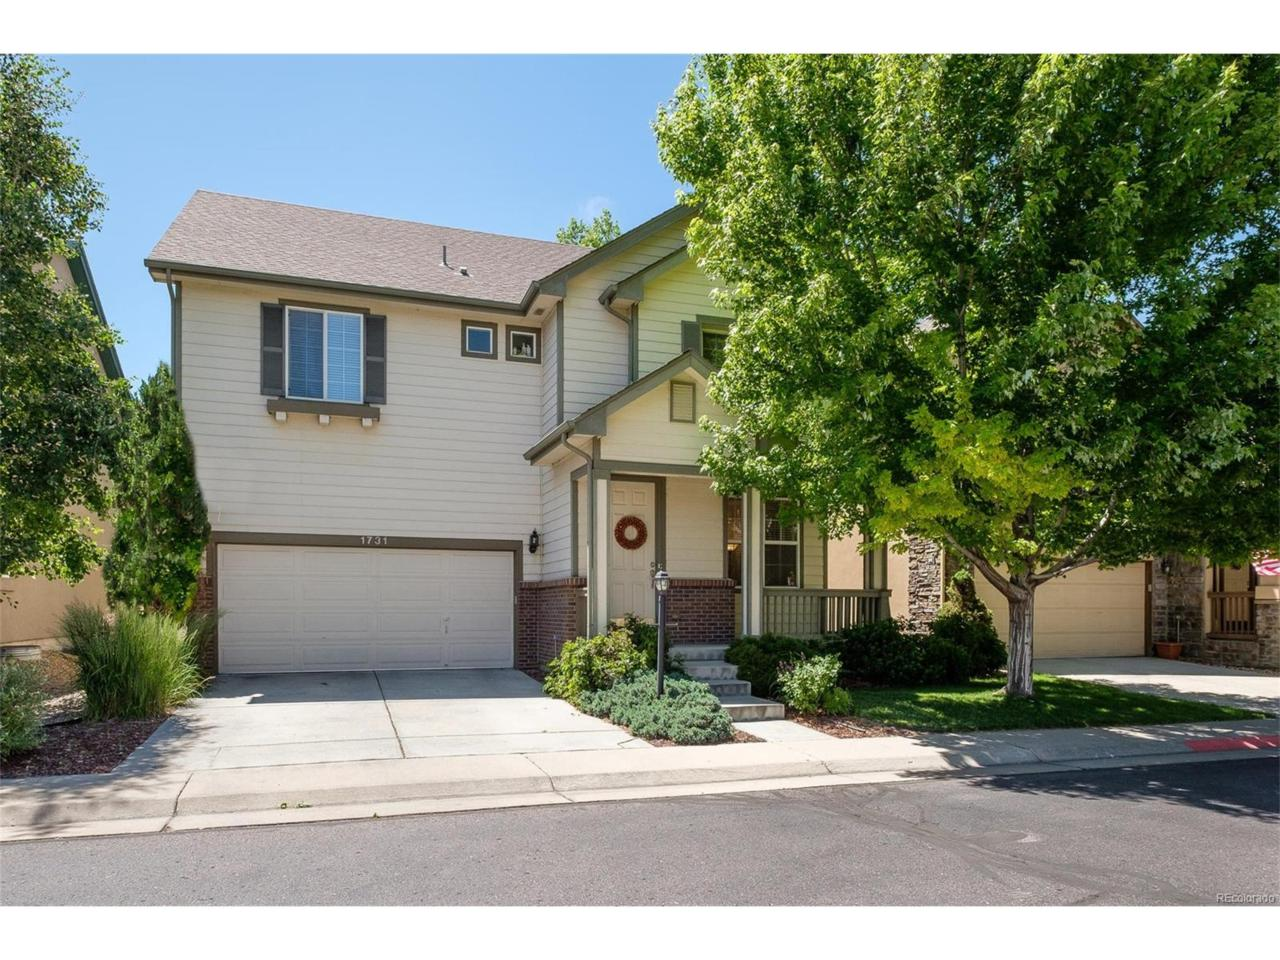 1731 S Poplar Way, Denver, CO 80224 (MLS #6455593) :: 8z Real Estate